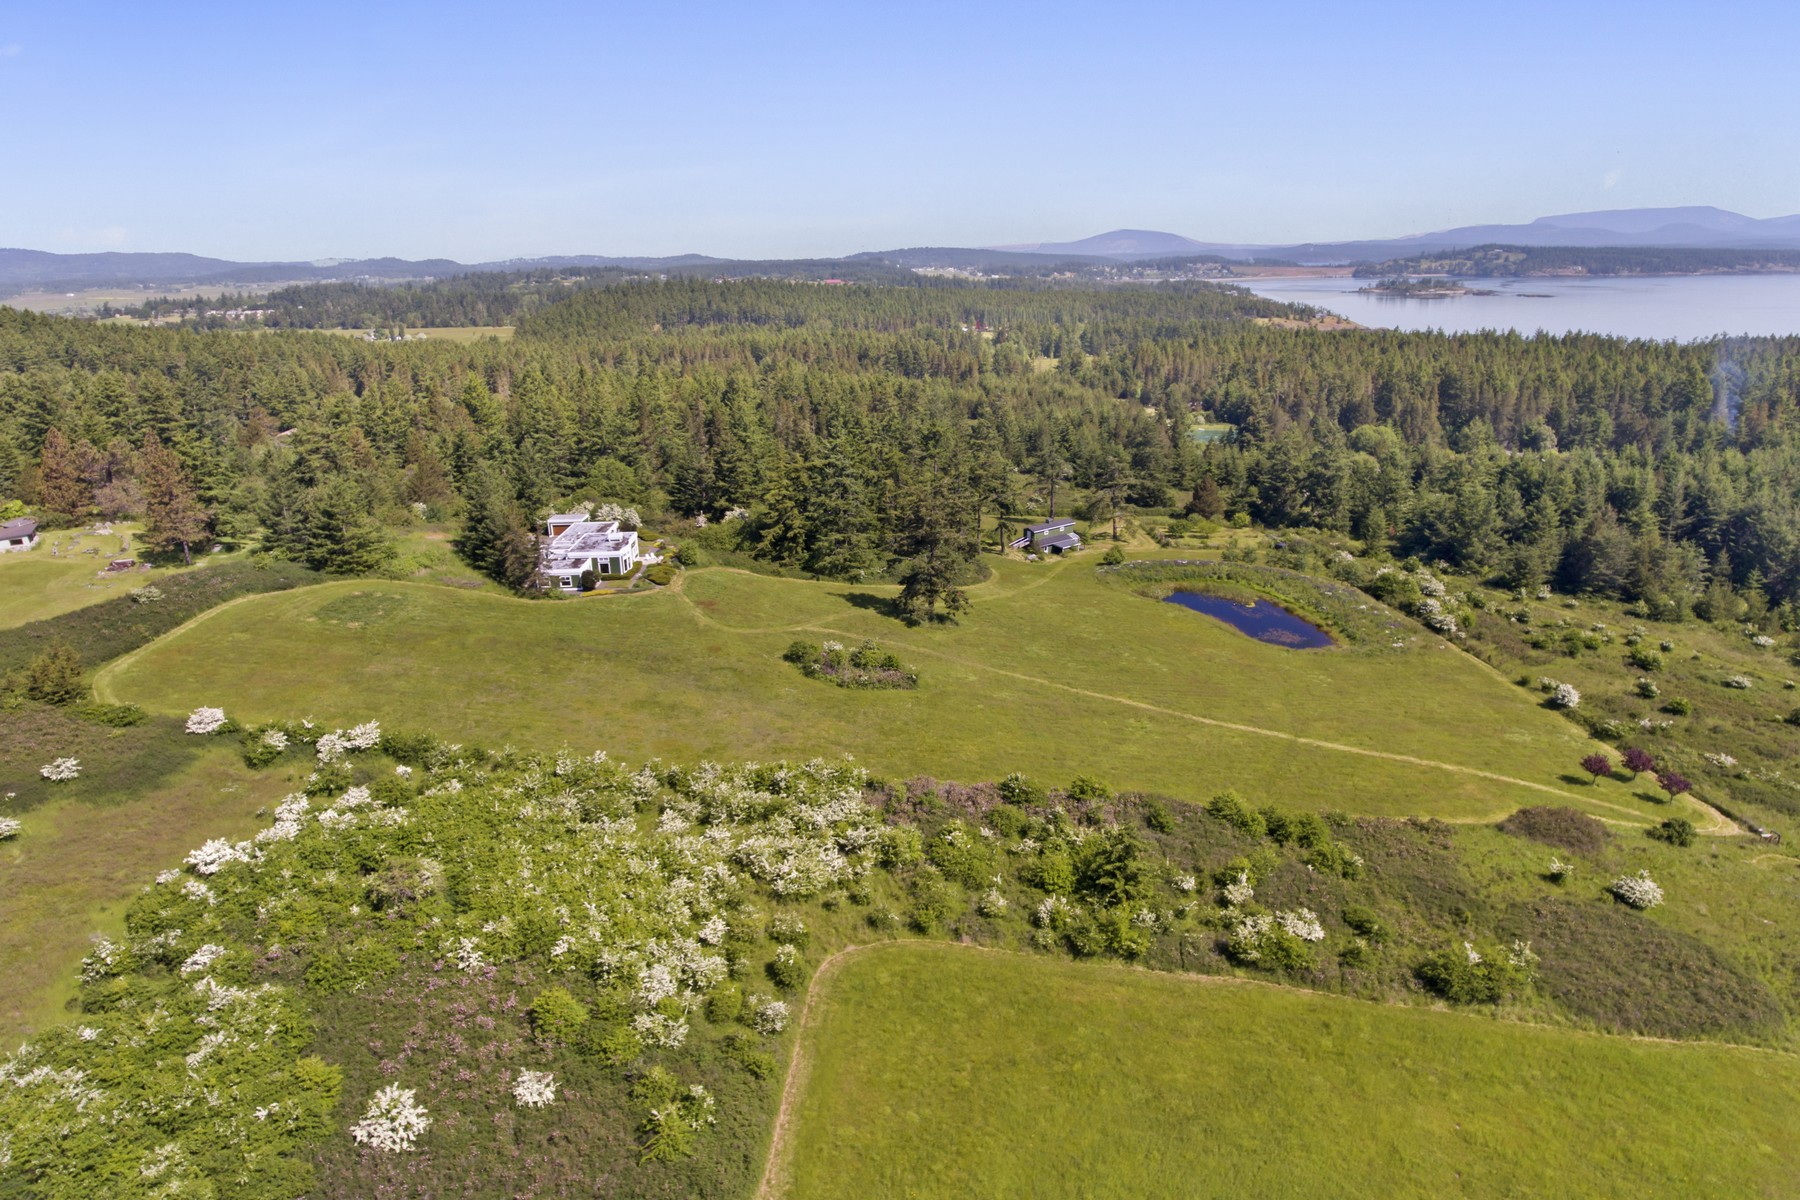 Casa Unifamiliar por un Venta en Spacious Home with Panoramic Views and Acreage 144 Jensen Bay Road Friday Harbor, Washington, 98250 Estados Unidos